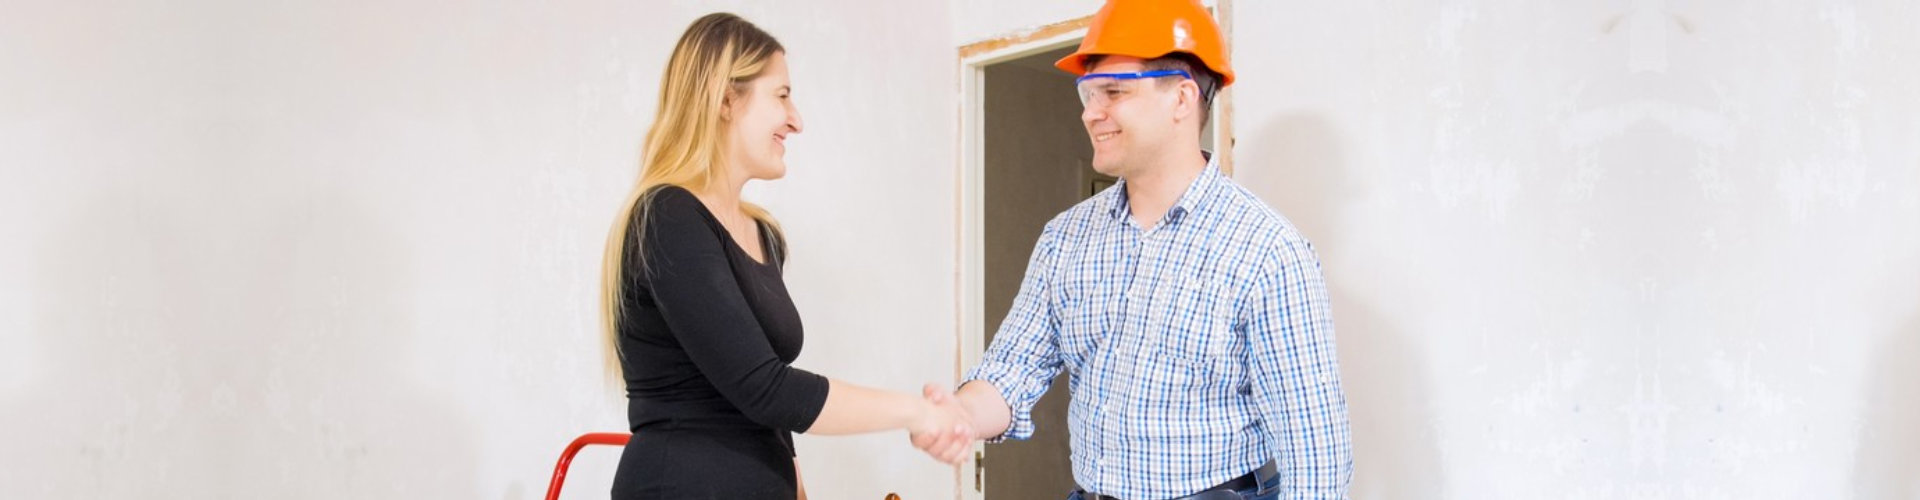 businesswoman and foreman engineer shaking their hands